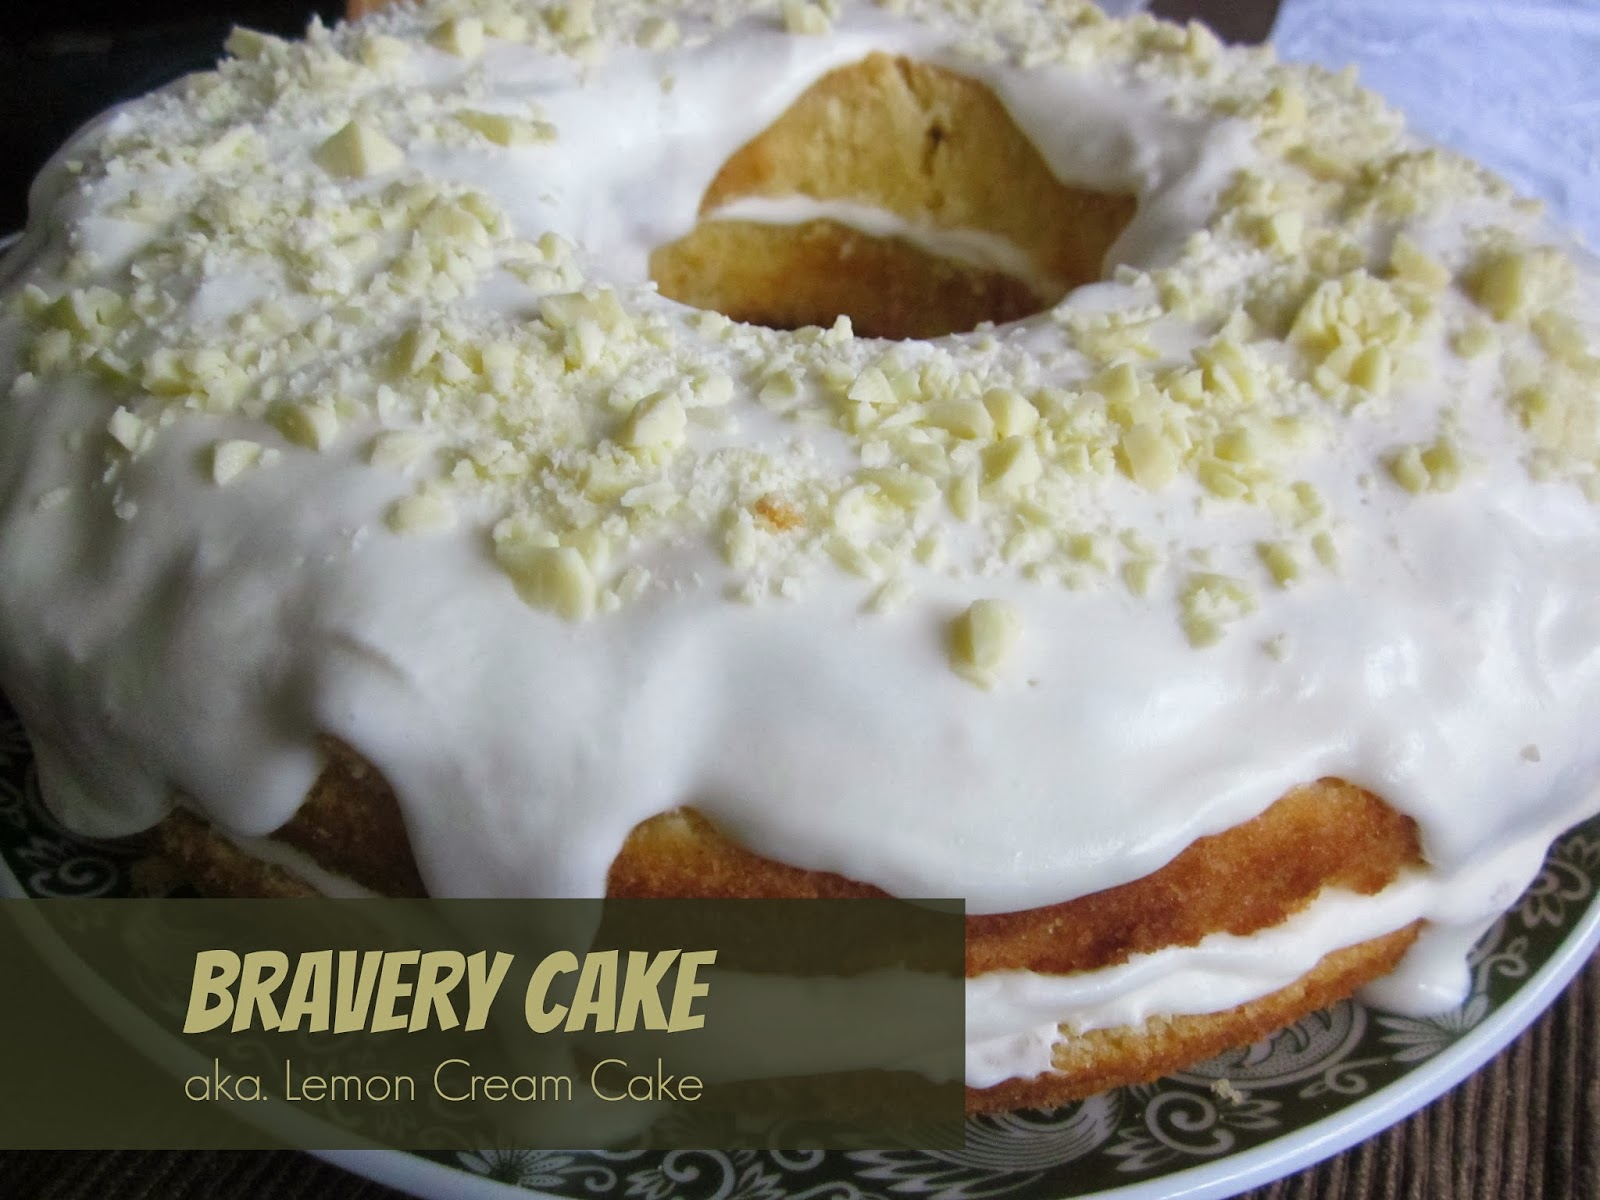 Bravery cake: lemon cream cake